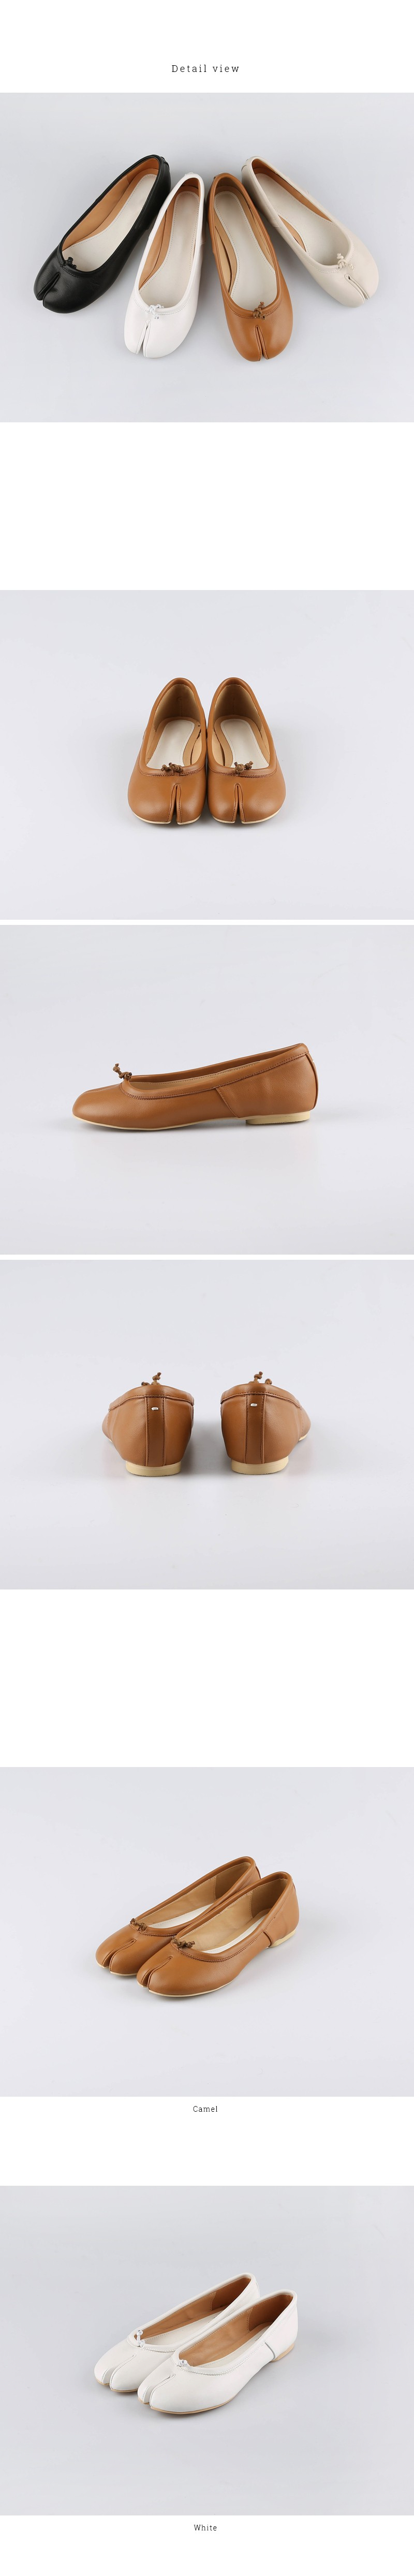 Outer Flat Shoes